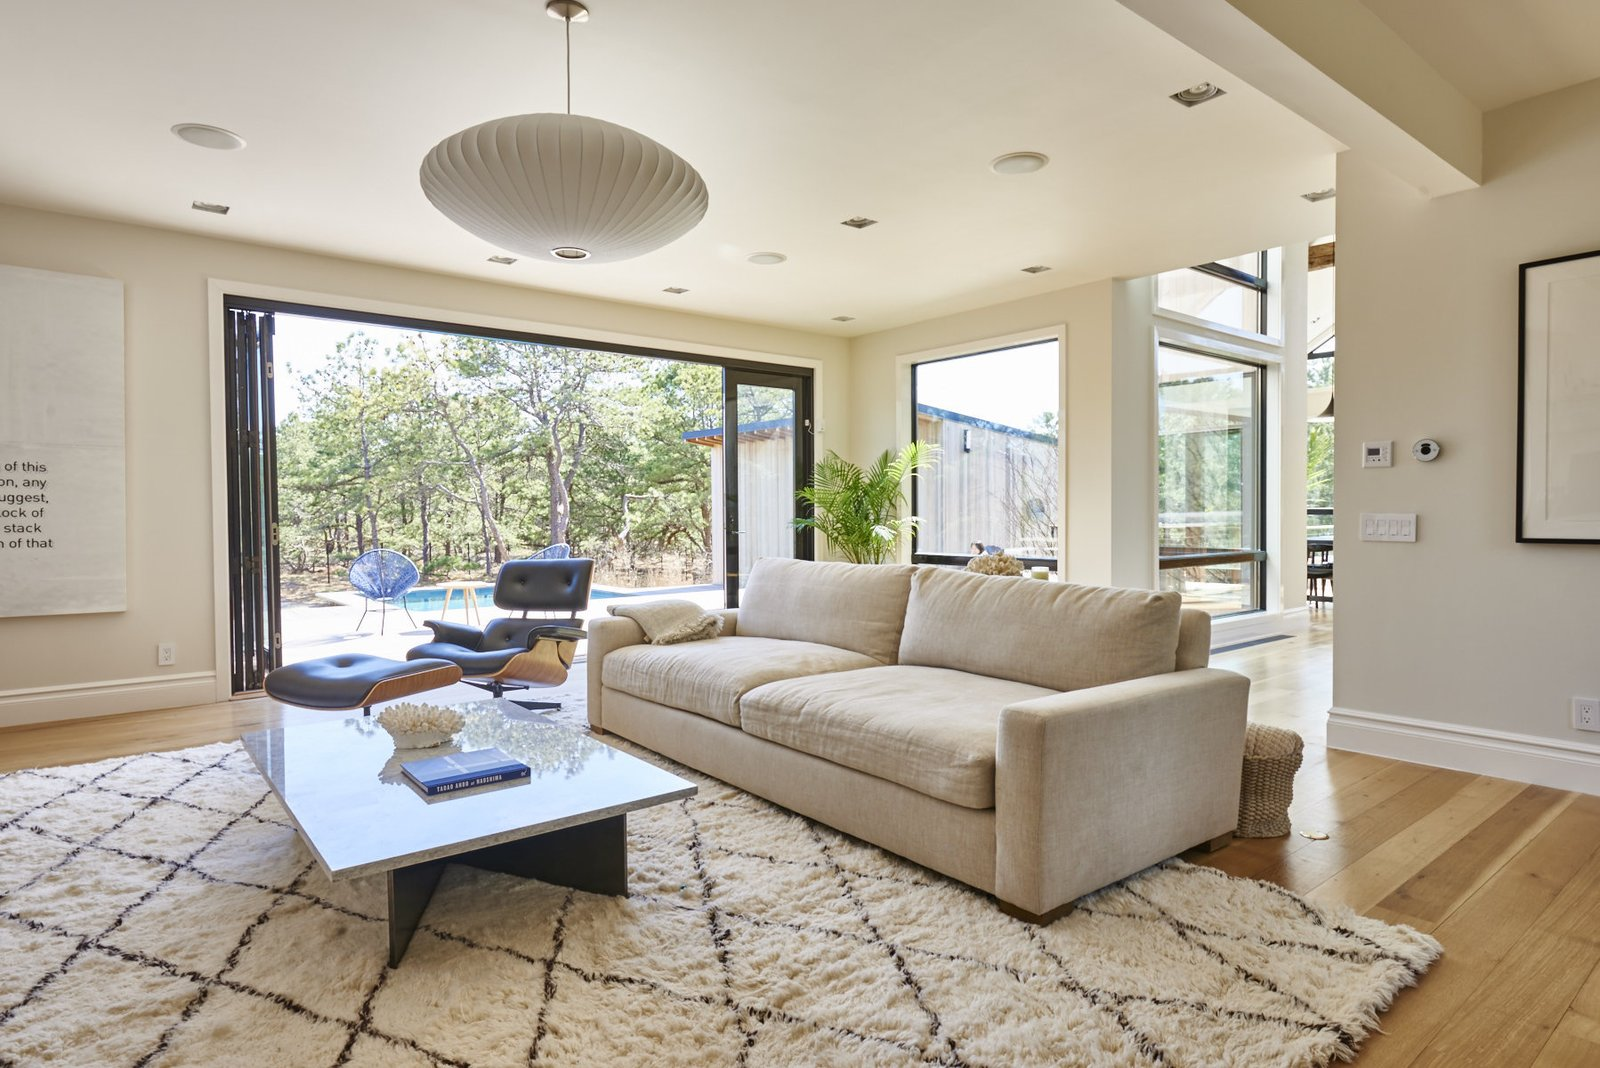 Solid white oak flooring is installed throughout. The home's windows and doors are by Andersen Windows.